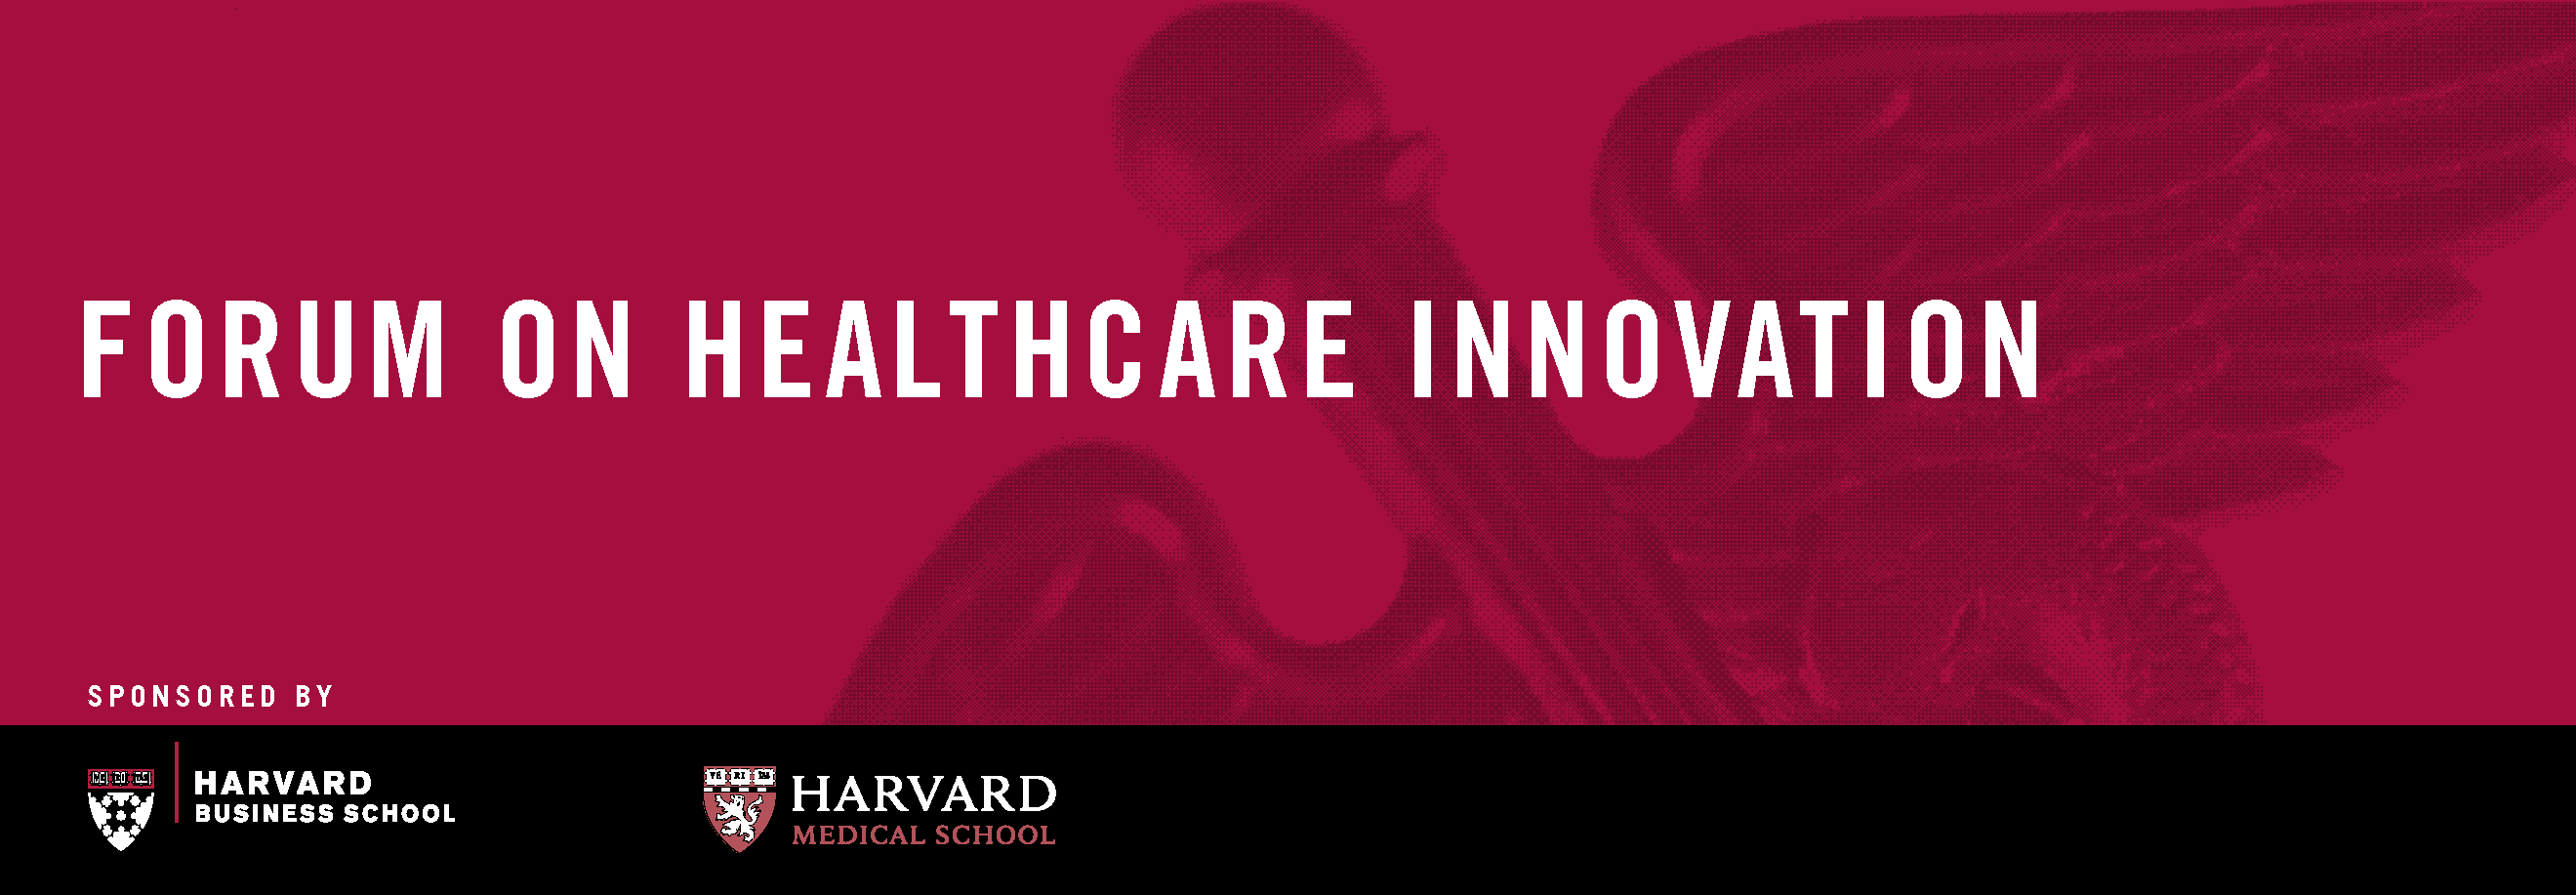 forum-on-healthcare-innovation